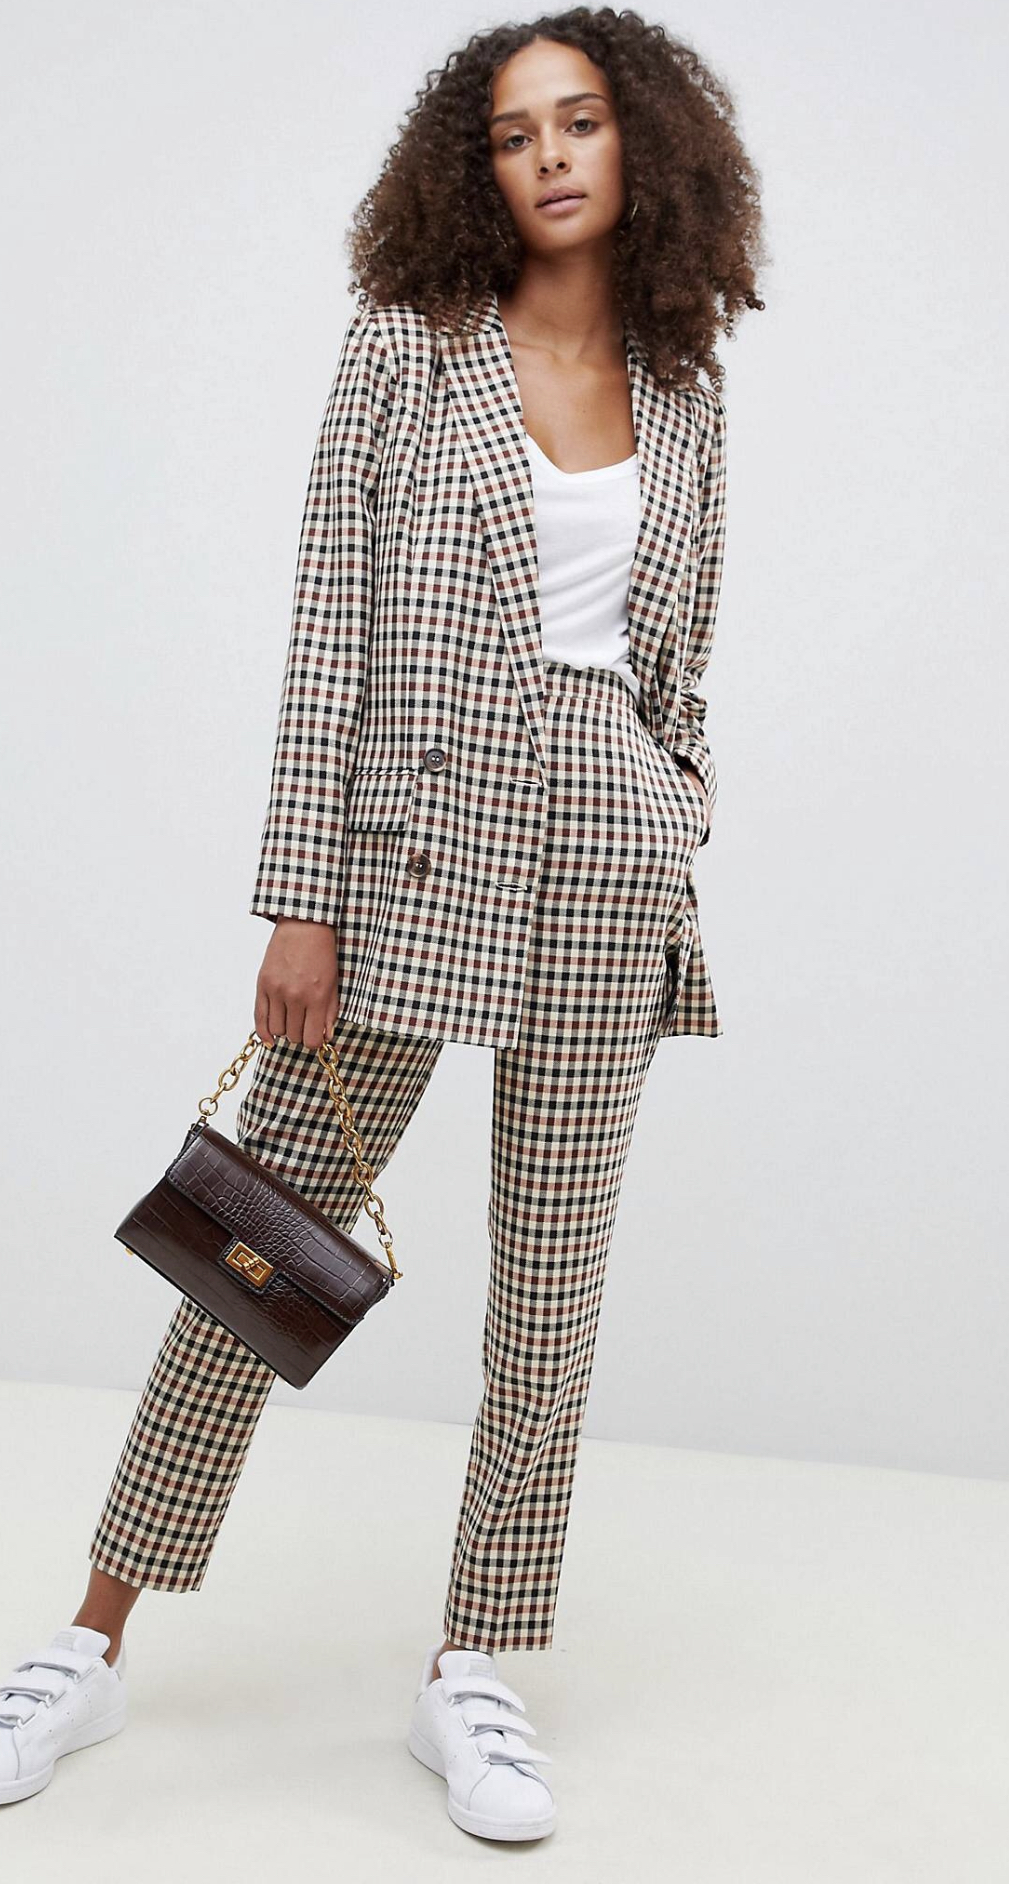 ASOS DESIGN tailored check slim pants, $42 (reduced from $60) and blazer, $43.50 (reduced from $87)